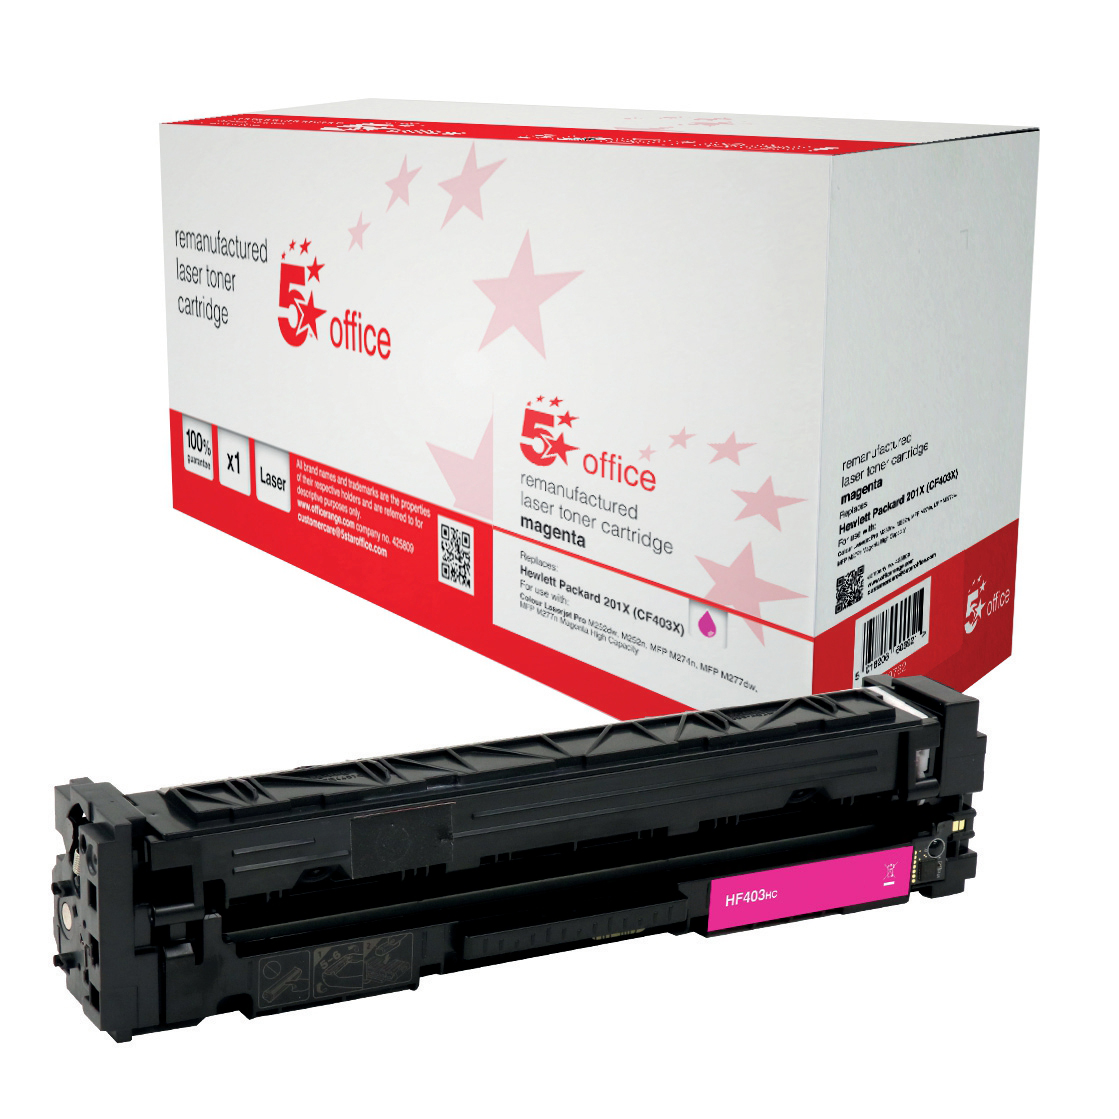 Laser Toner Cartridges 5 Star Office Remanufactured Laser TonerCartridge HY Page Life 2300ppMagenta HP 201X CF403X Alternative